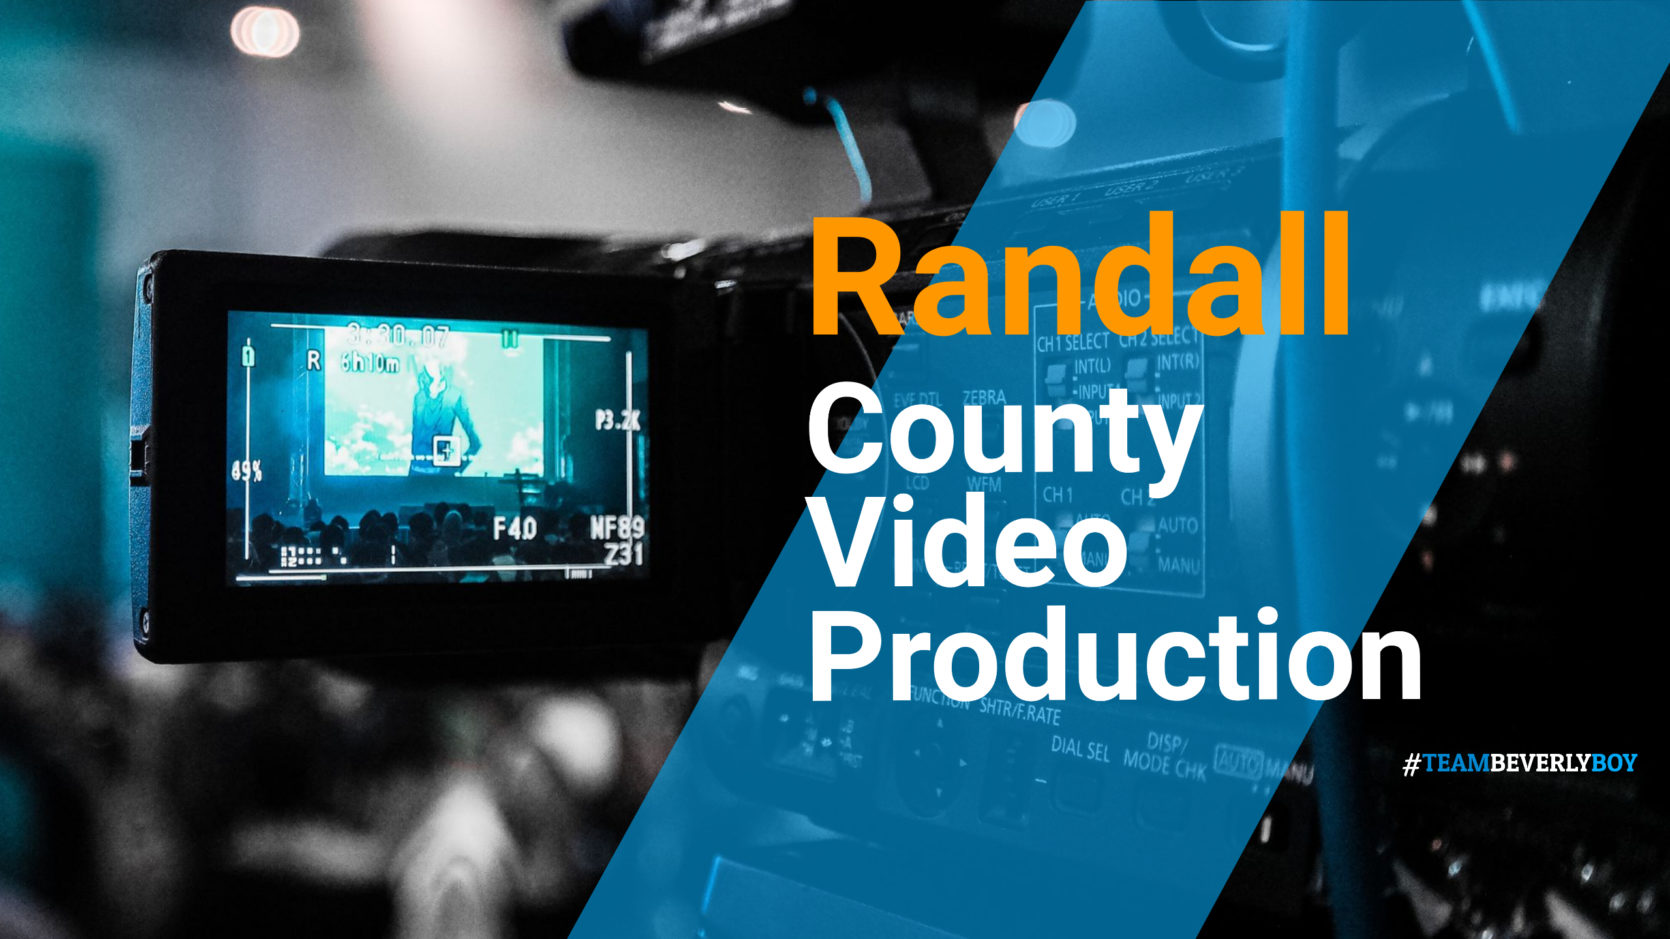 Randall county Video Production